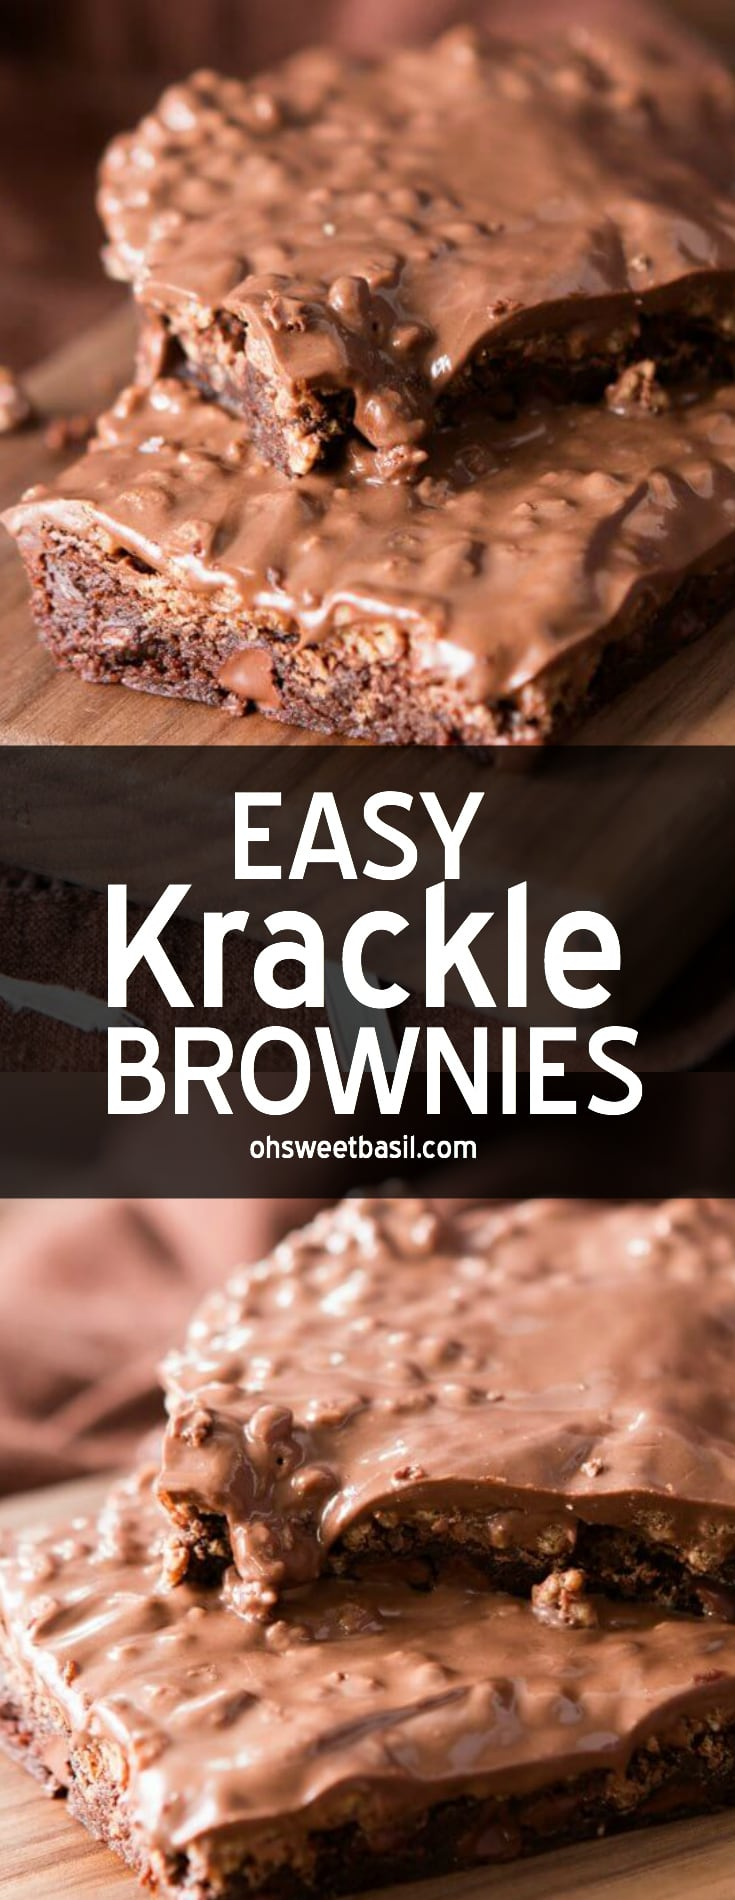 A stack of quick and easy krackle brownies